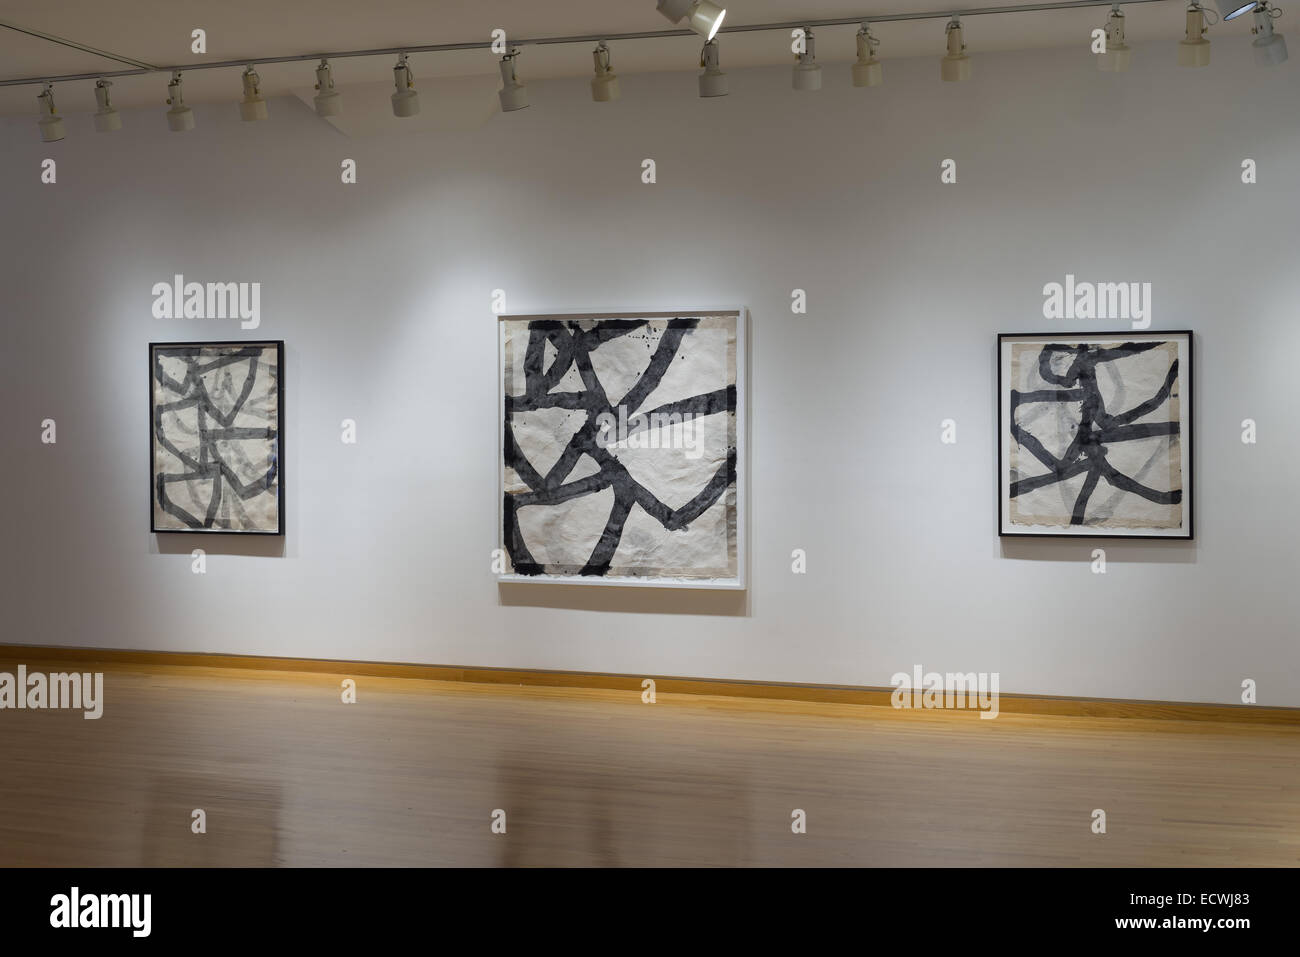 Exhibition by artist Marc Katano at the Stephen Wirtz Gallery, San Francisco, CA. - Stock Image